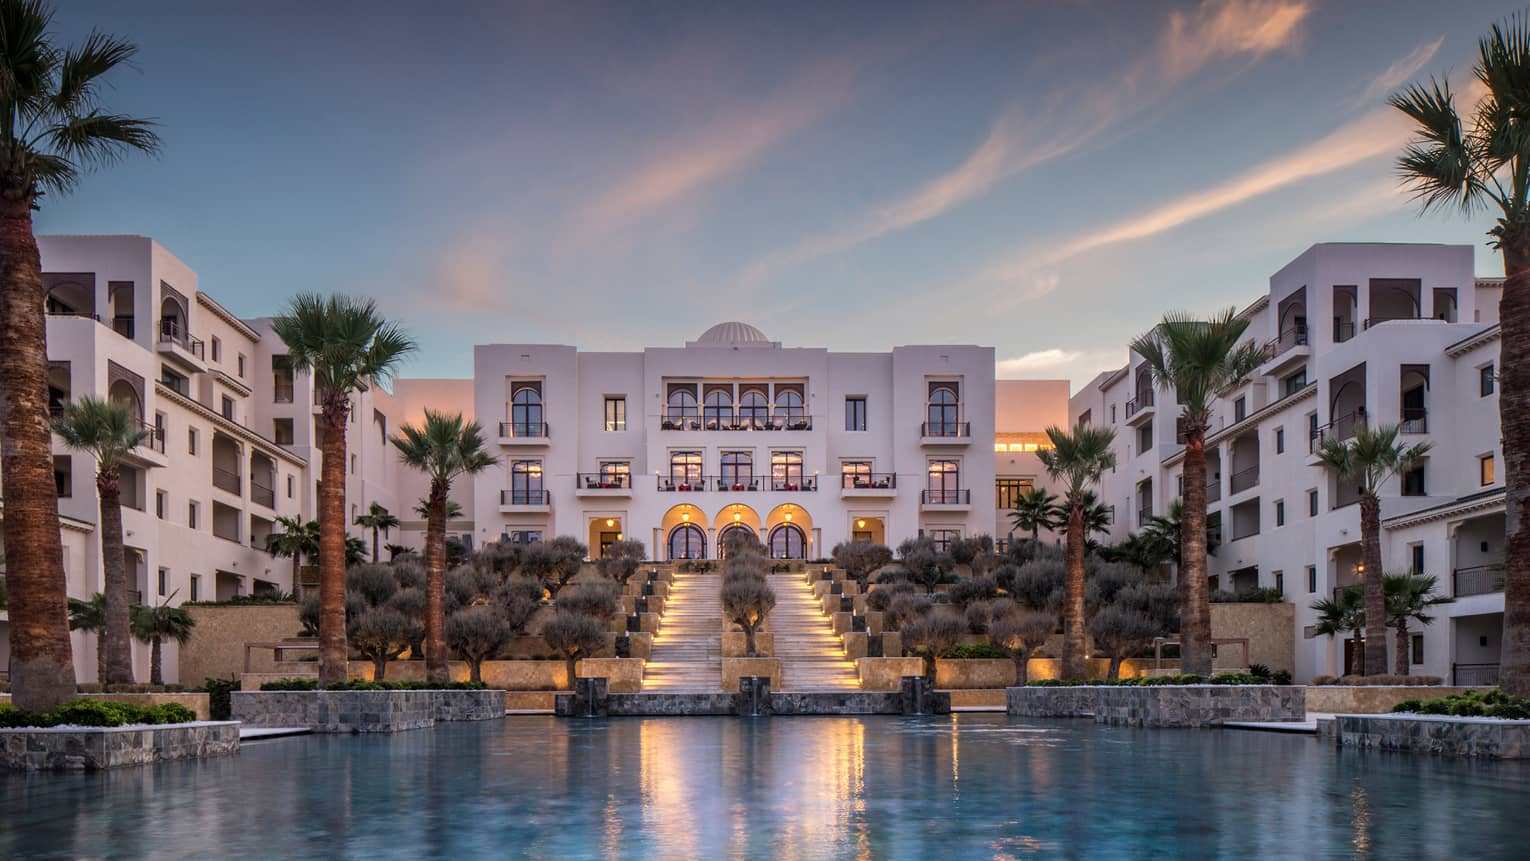 Perfect Four Seasons Hotel Tunis Modern White Buildings Around Pool, Palm Trees At  Sunset